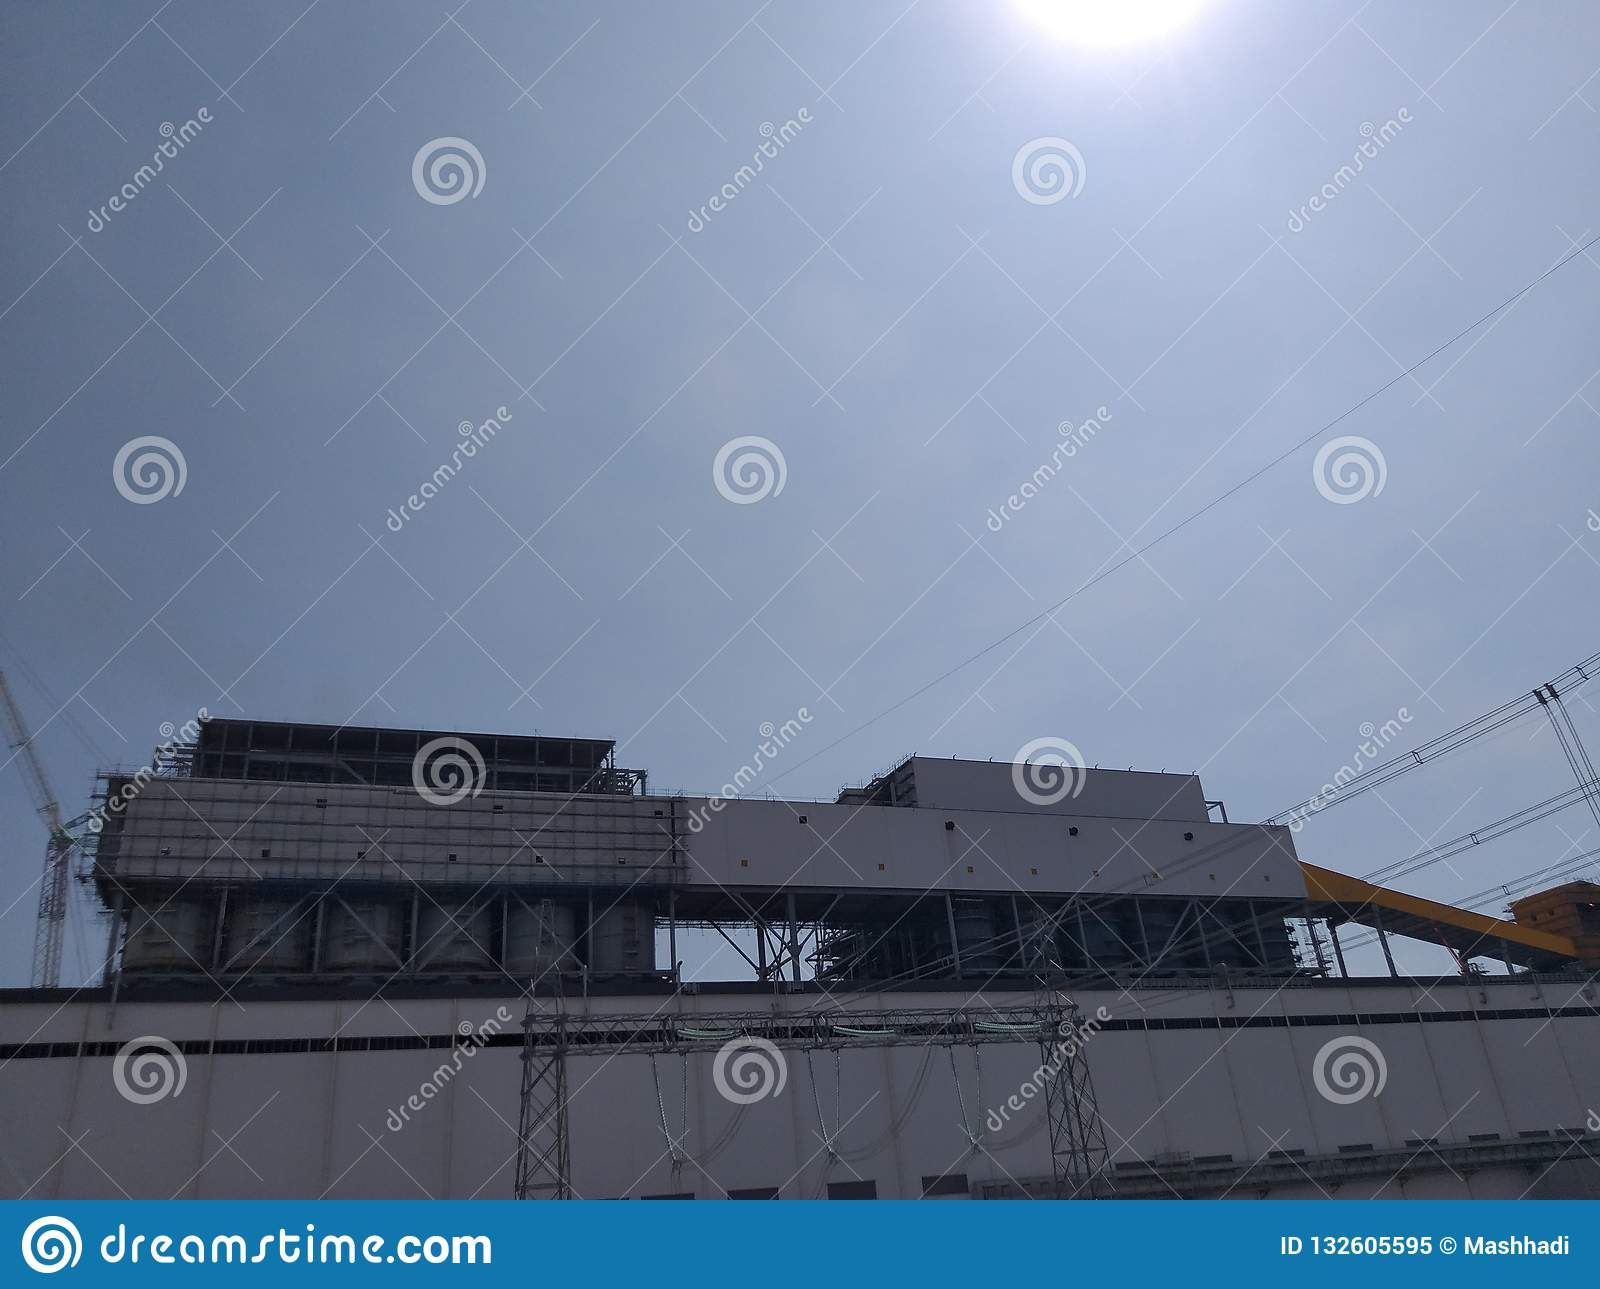 A huge steel structure building under the shining sun and blue sky